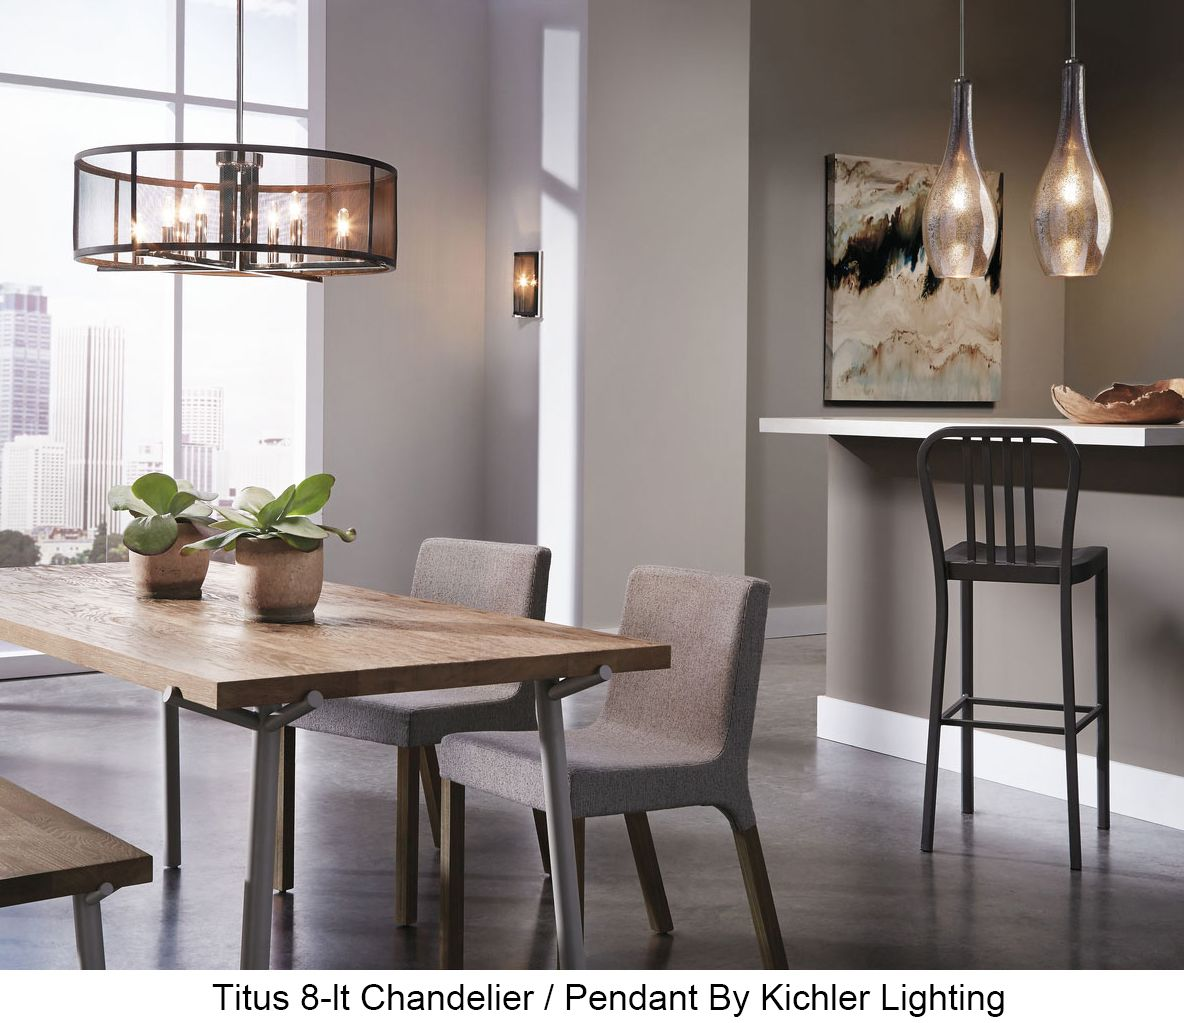 23 Dining Room Chandelier Designs Decorating Ideas: Kichler 43715 Titus 8-lt Chandelier/Pendant